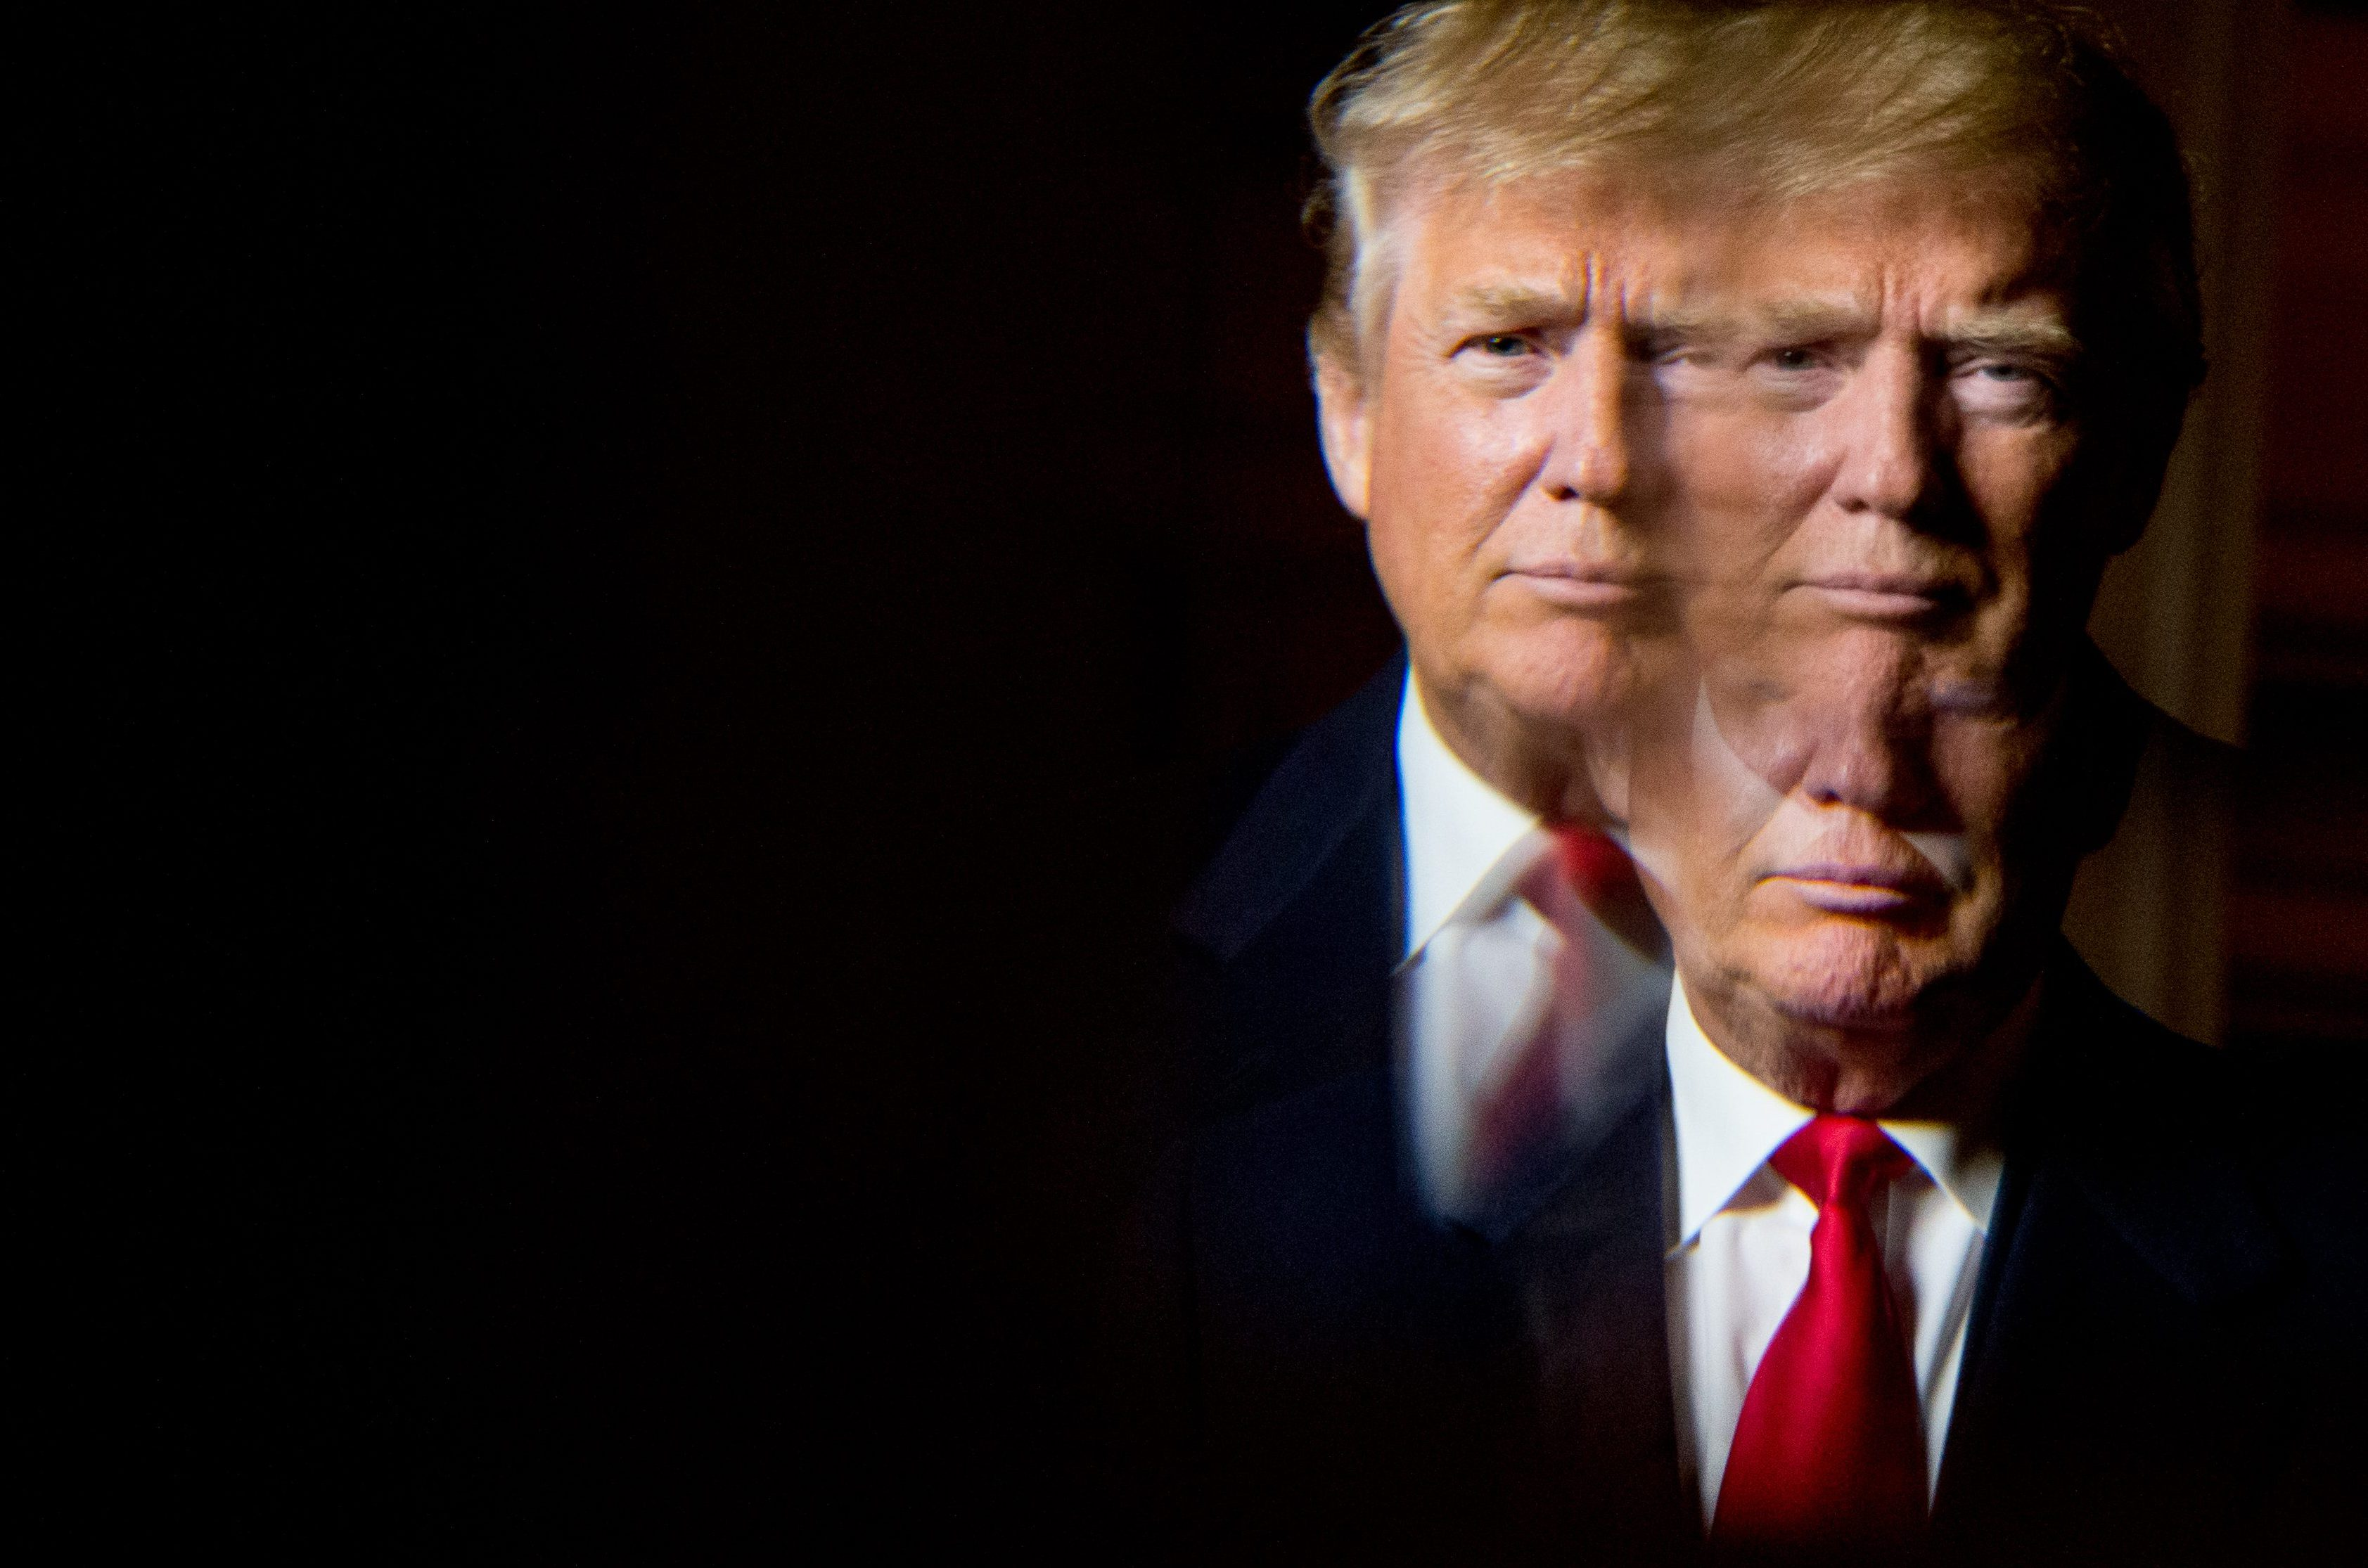 Republican presidential candidate Donald Trump, seen in reflection, poses for a portrait following an interview with the Associated Press at the Trump National Golf Club in Sterling, Va., Wednesday, Dec. 2, 2015. Trump says that if he's elected president, he'll know within six months whether he can achieve an elusive peace accord between Israelis and Palestinians, one of the world's most vexing challenges. But the Republican presidential candidate says he has doubts about each side's commitment to the peace process.